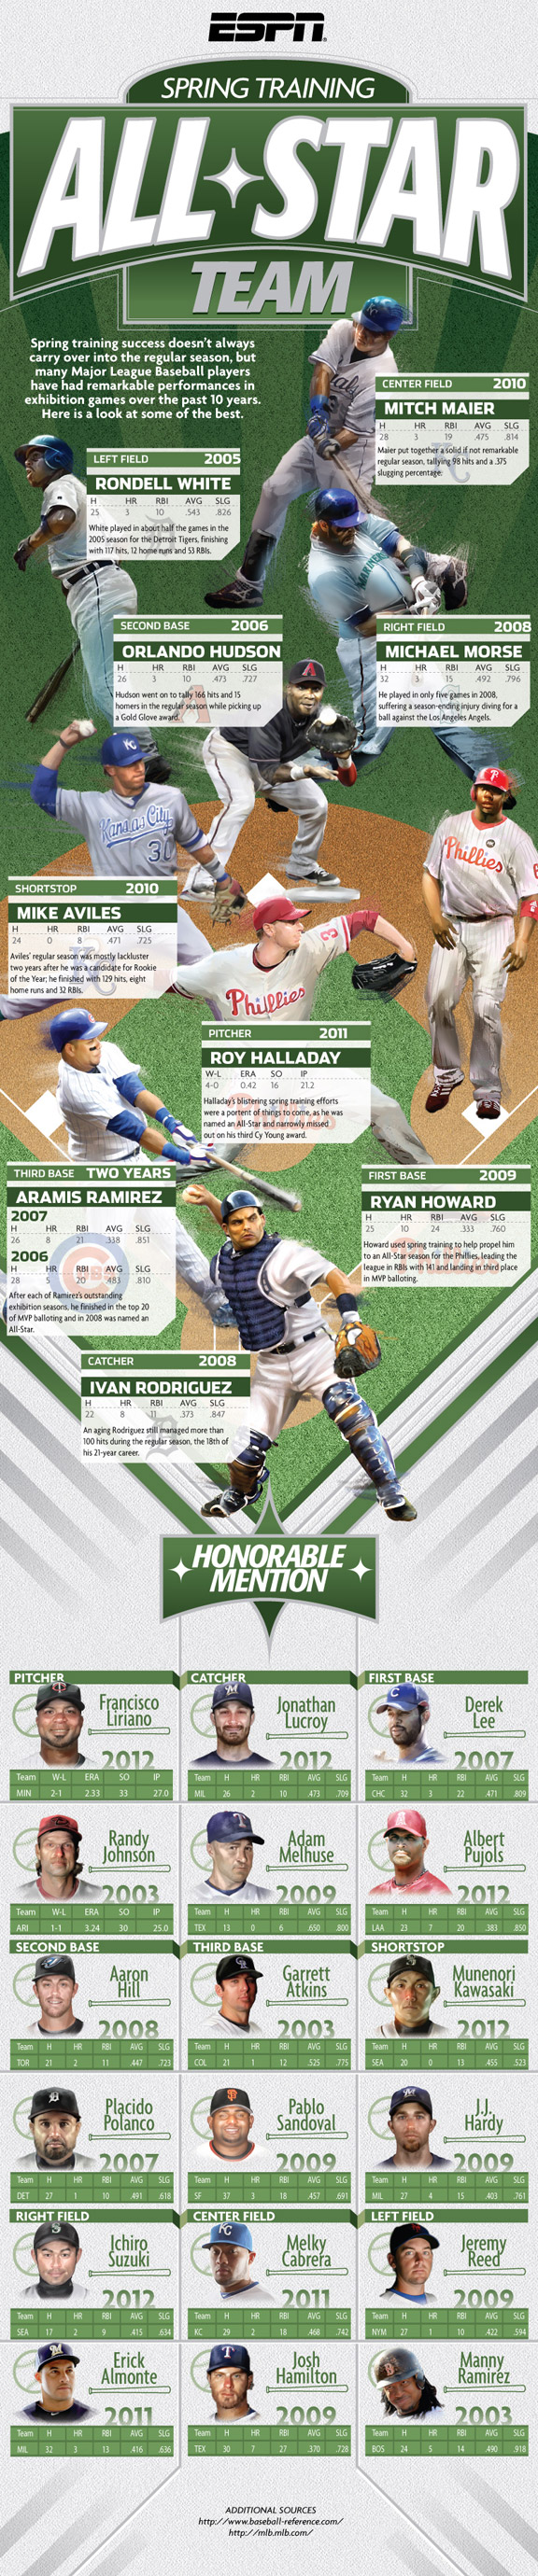 InfographicWorld.com Spring Training All-Star Team infographic